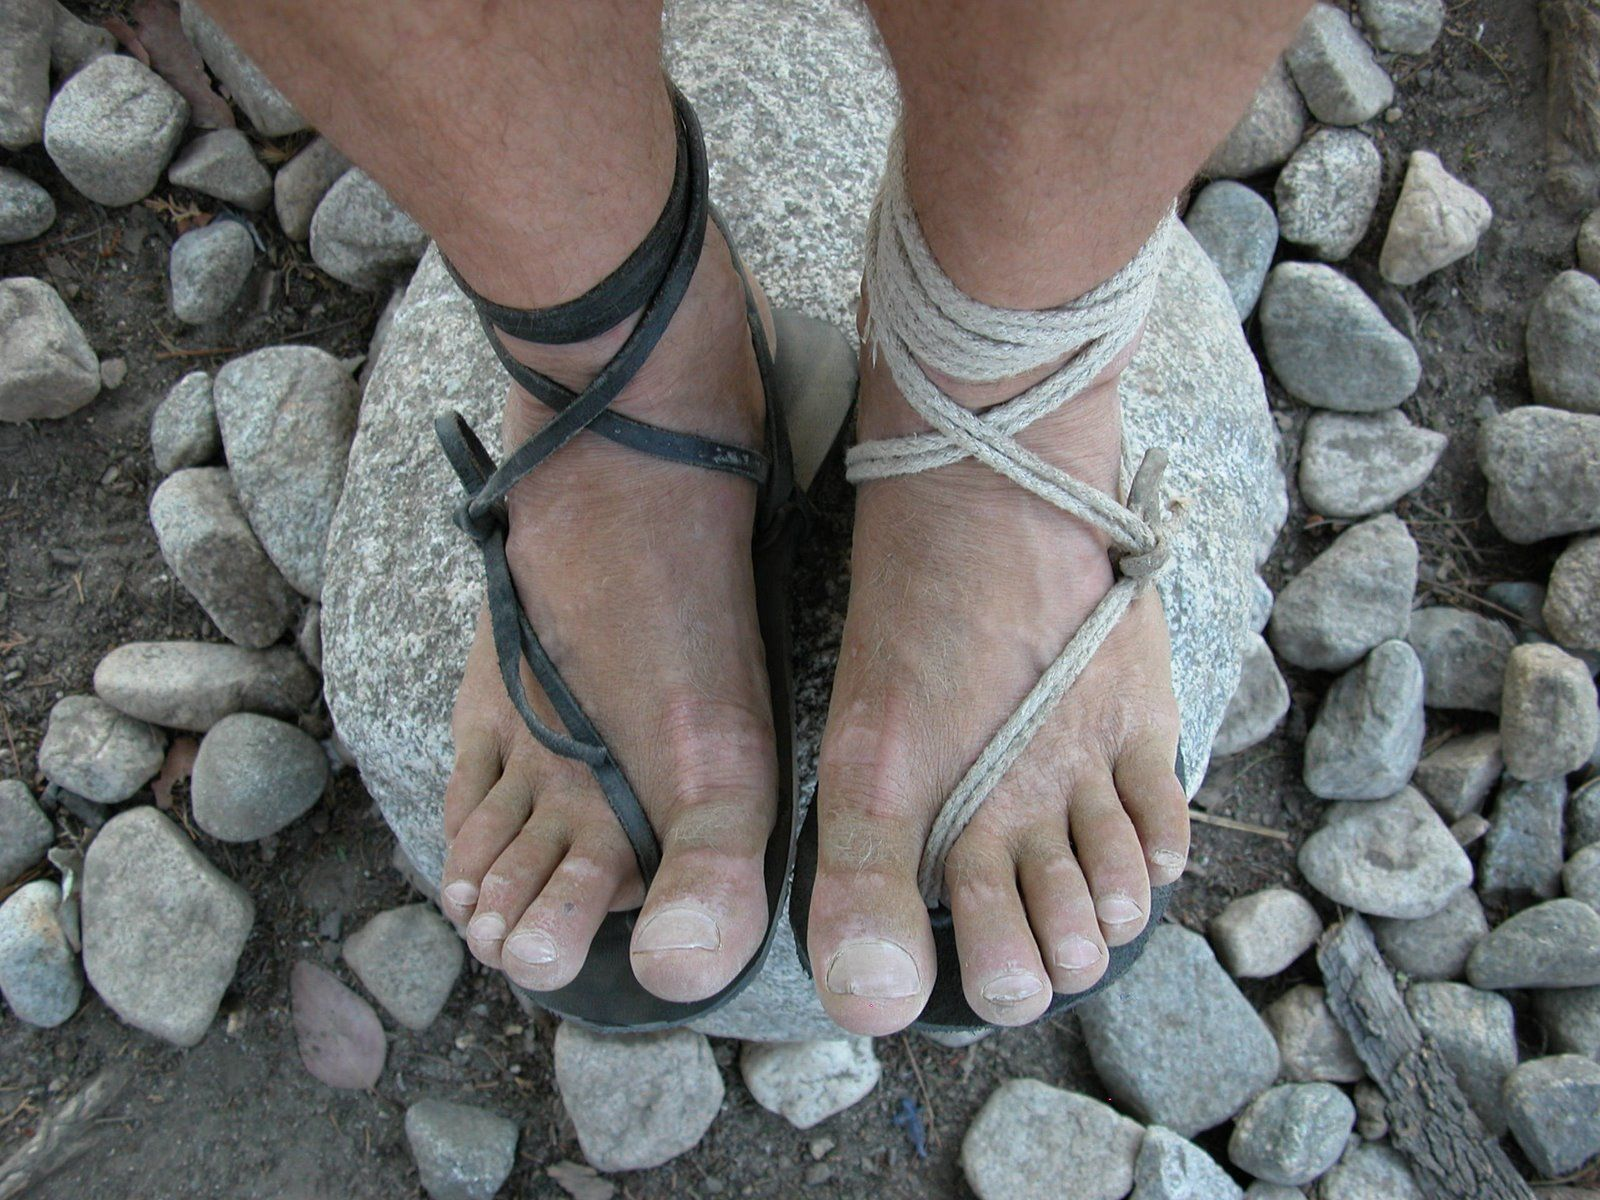 Barefoot Ted has been testing these